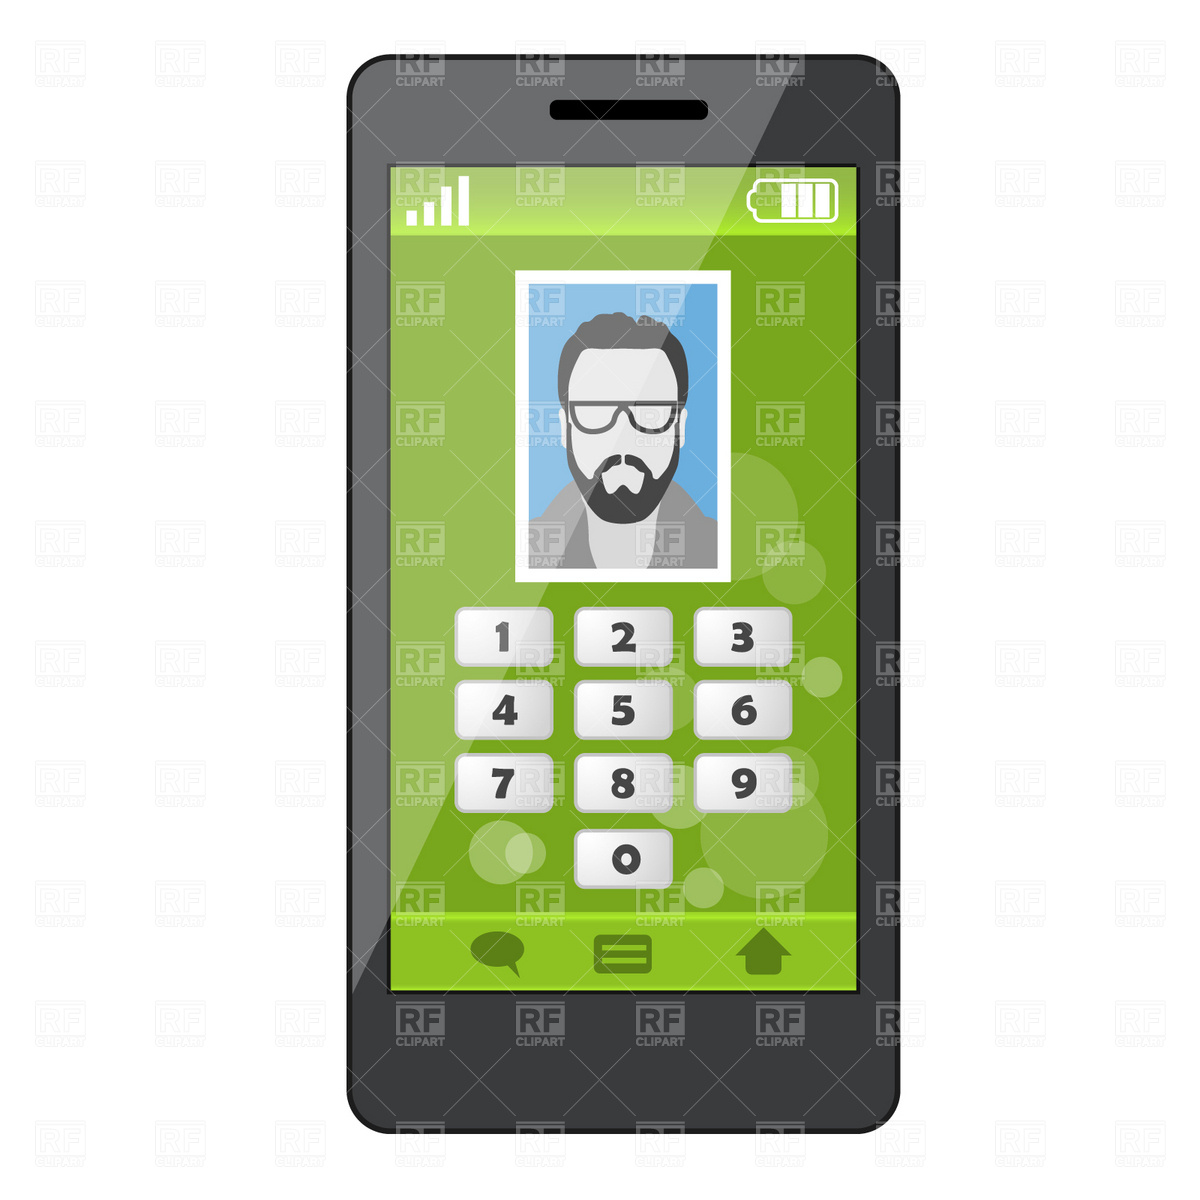 1200x1200 Smartphone With Contact Profile Royalty Free Vector Clip Art Image